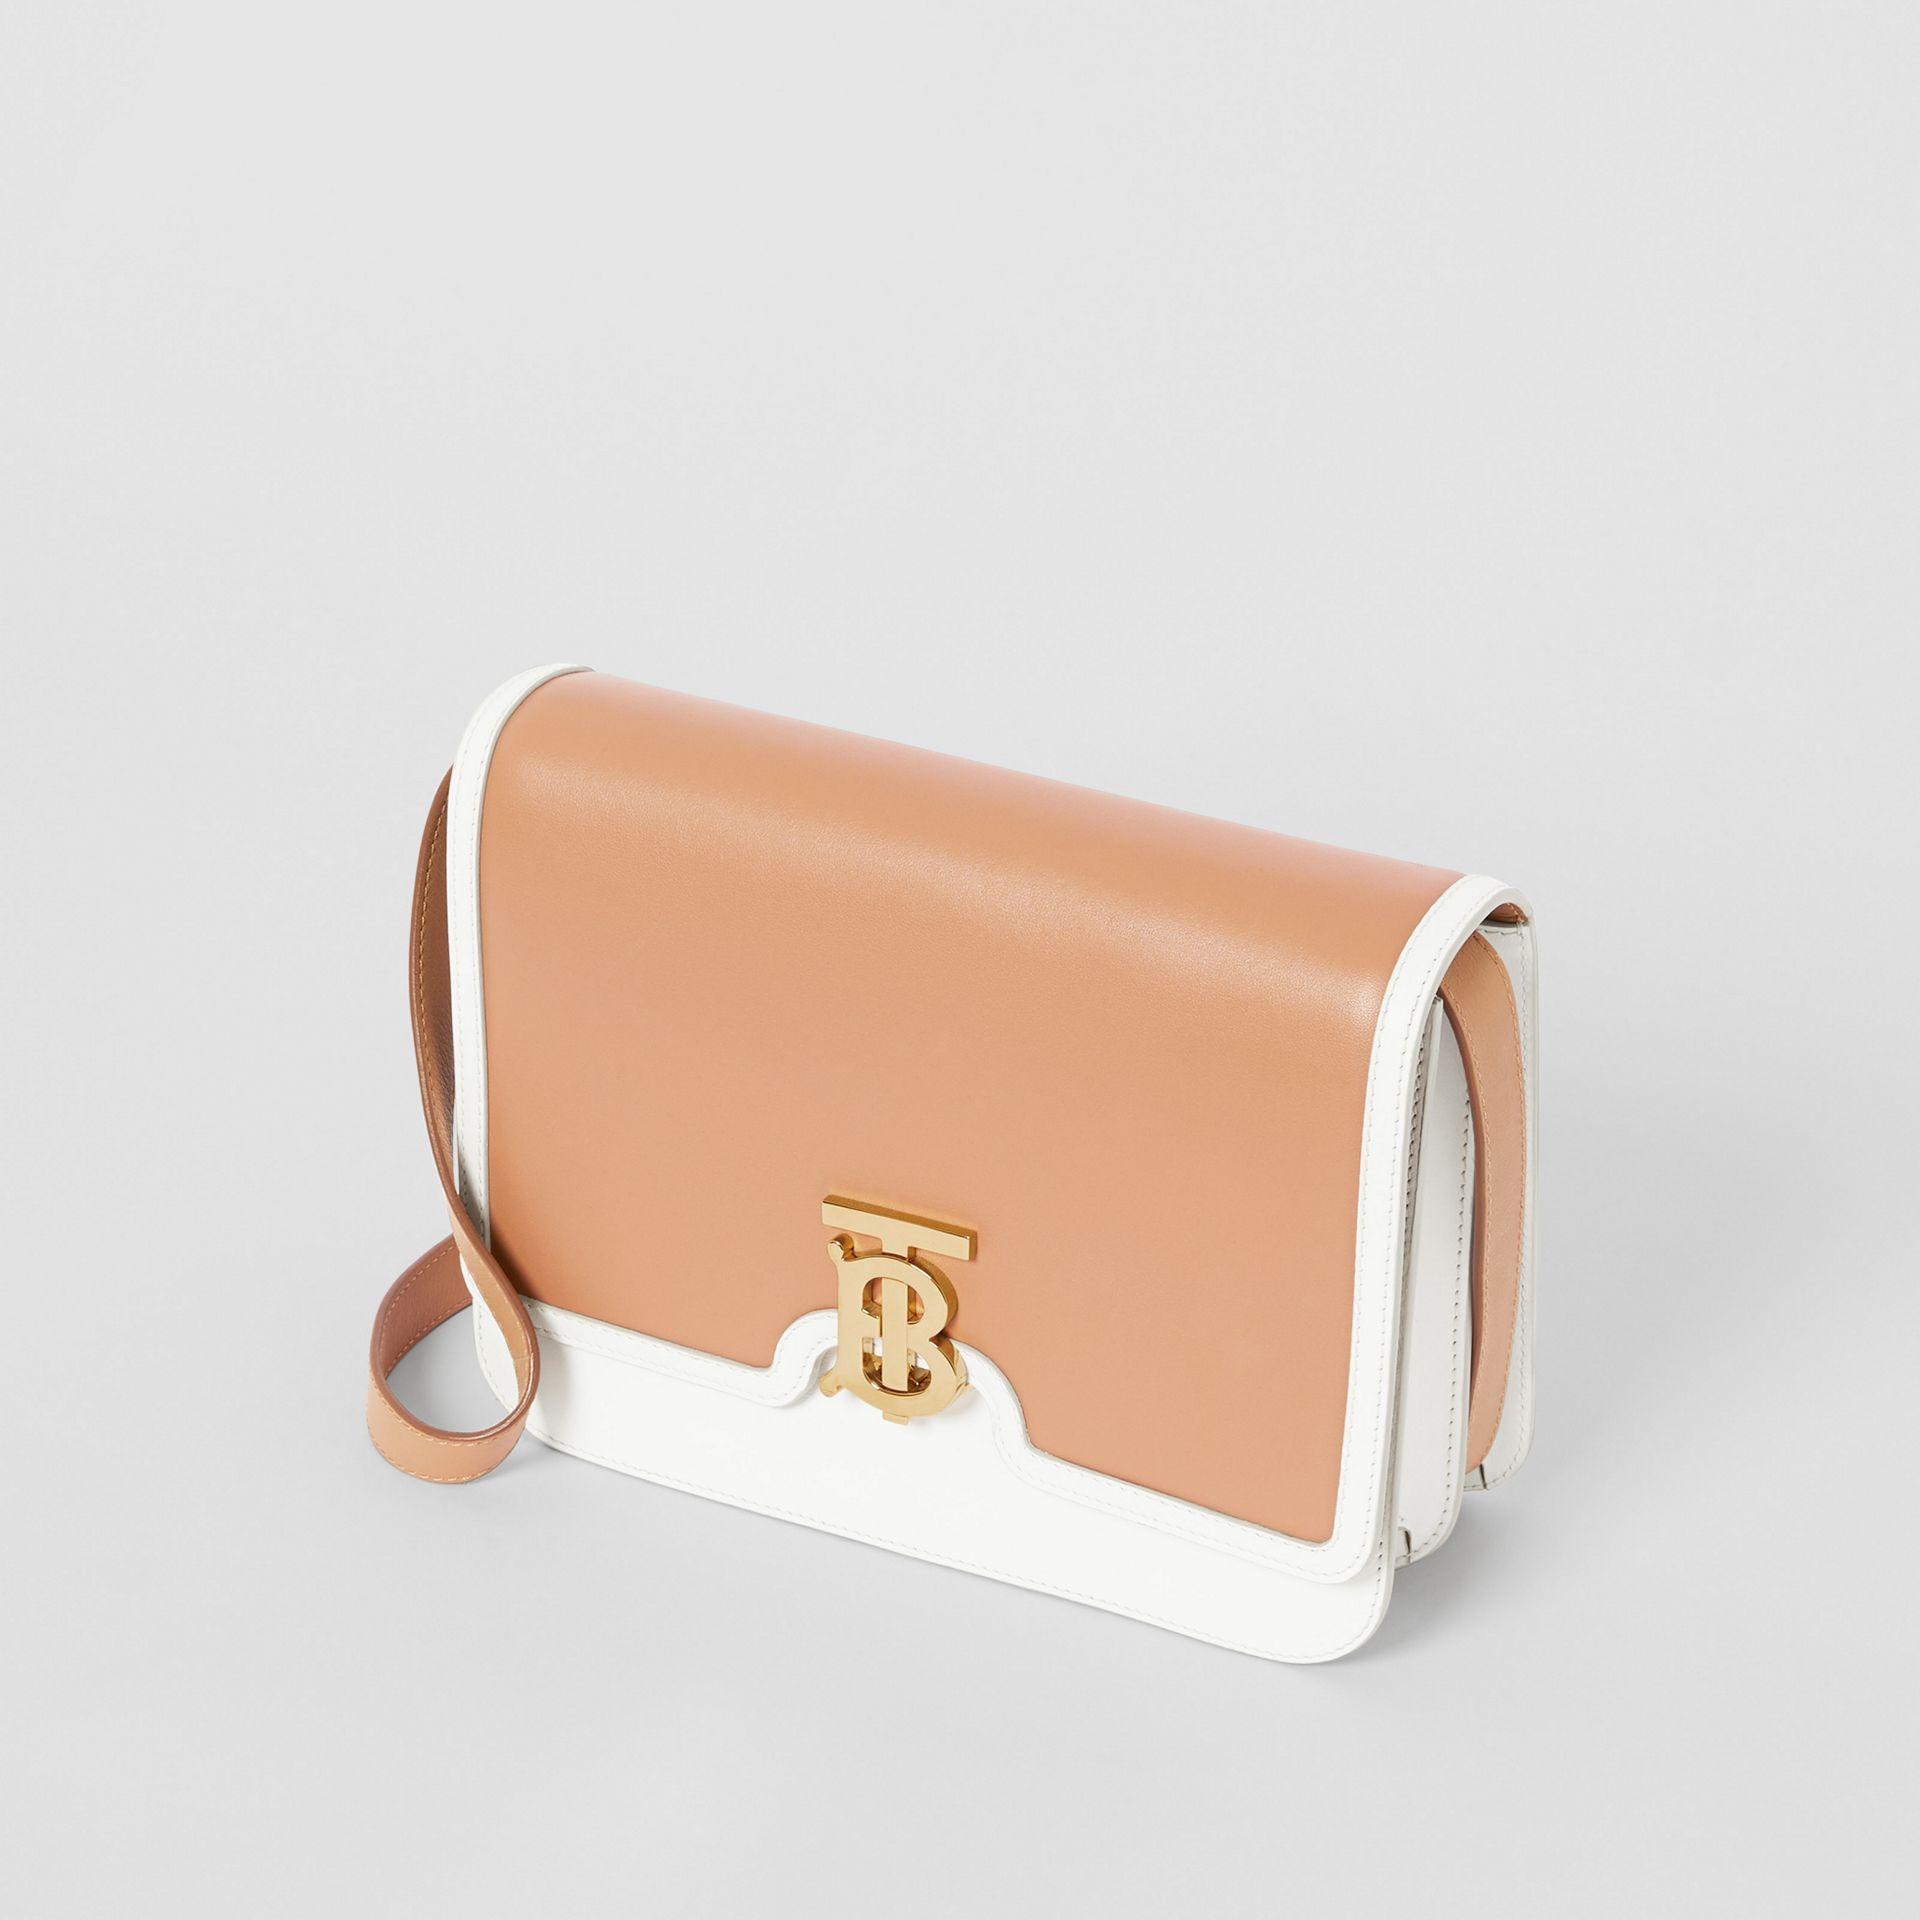 Medium Two-tone Leather TB Bag in Chalk White/light Camel - Women | Burberry United States - gallery image 3